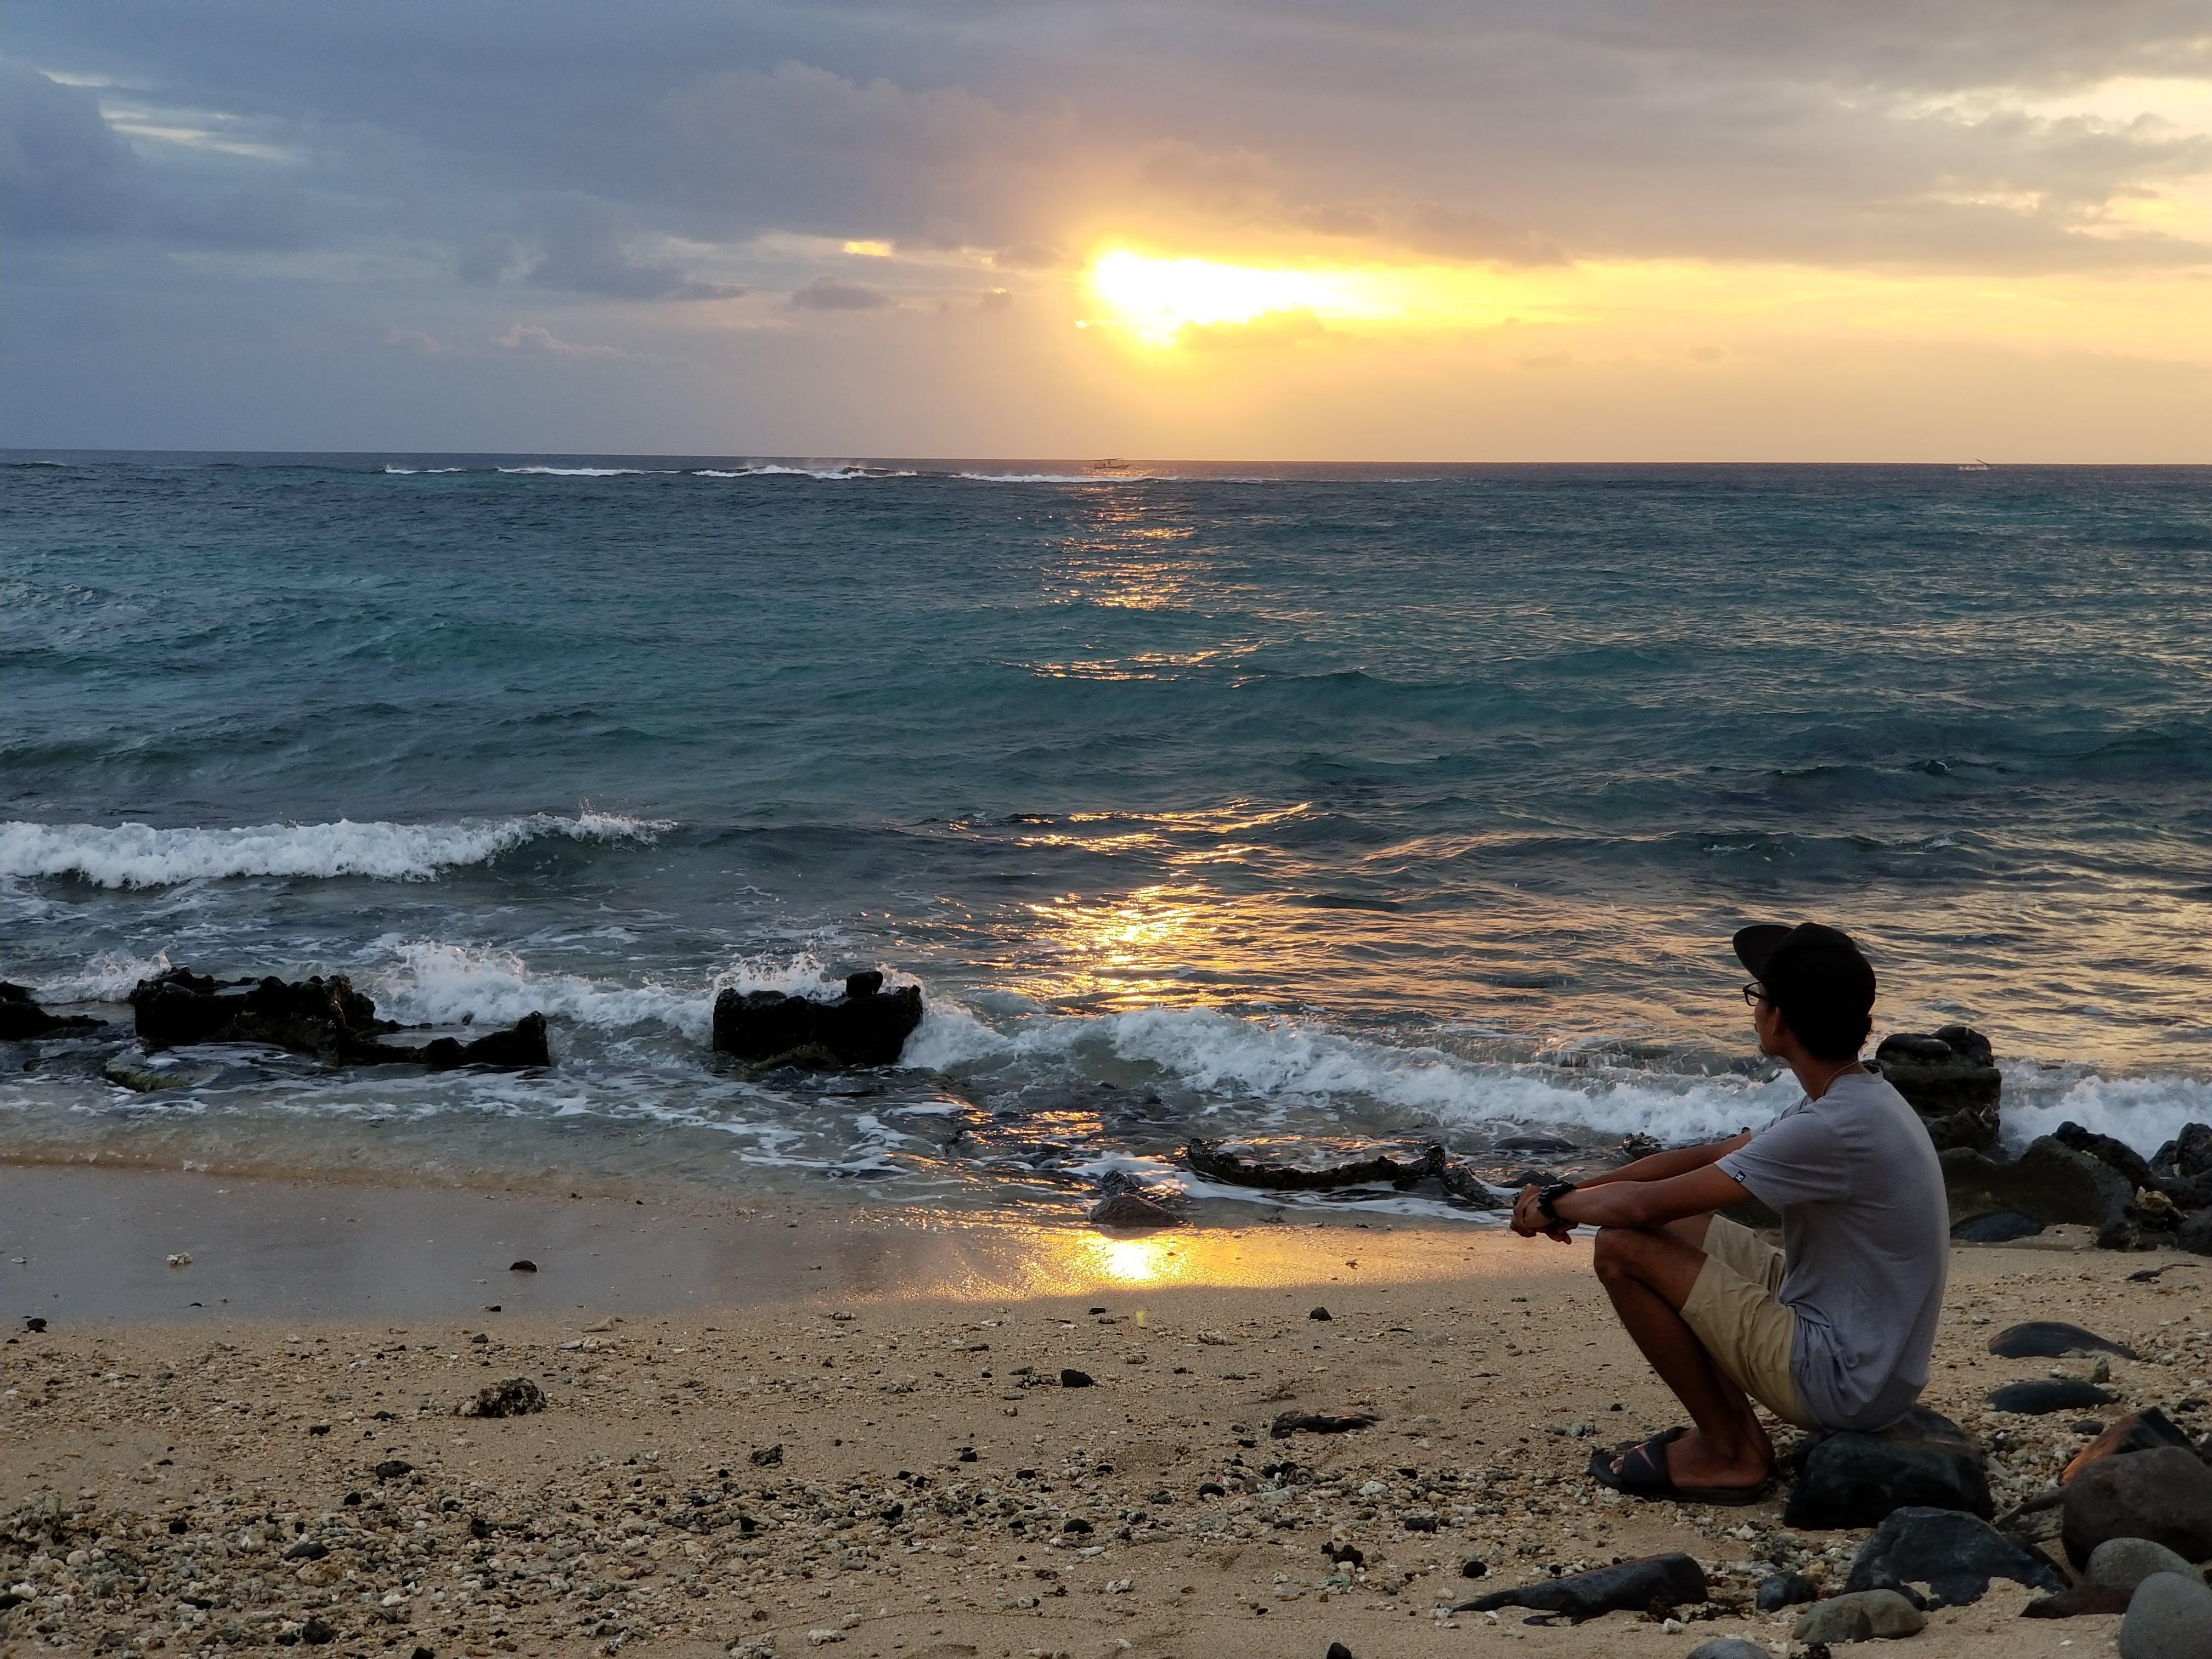 Man Sitting by the Beach Looking at Setting Sun